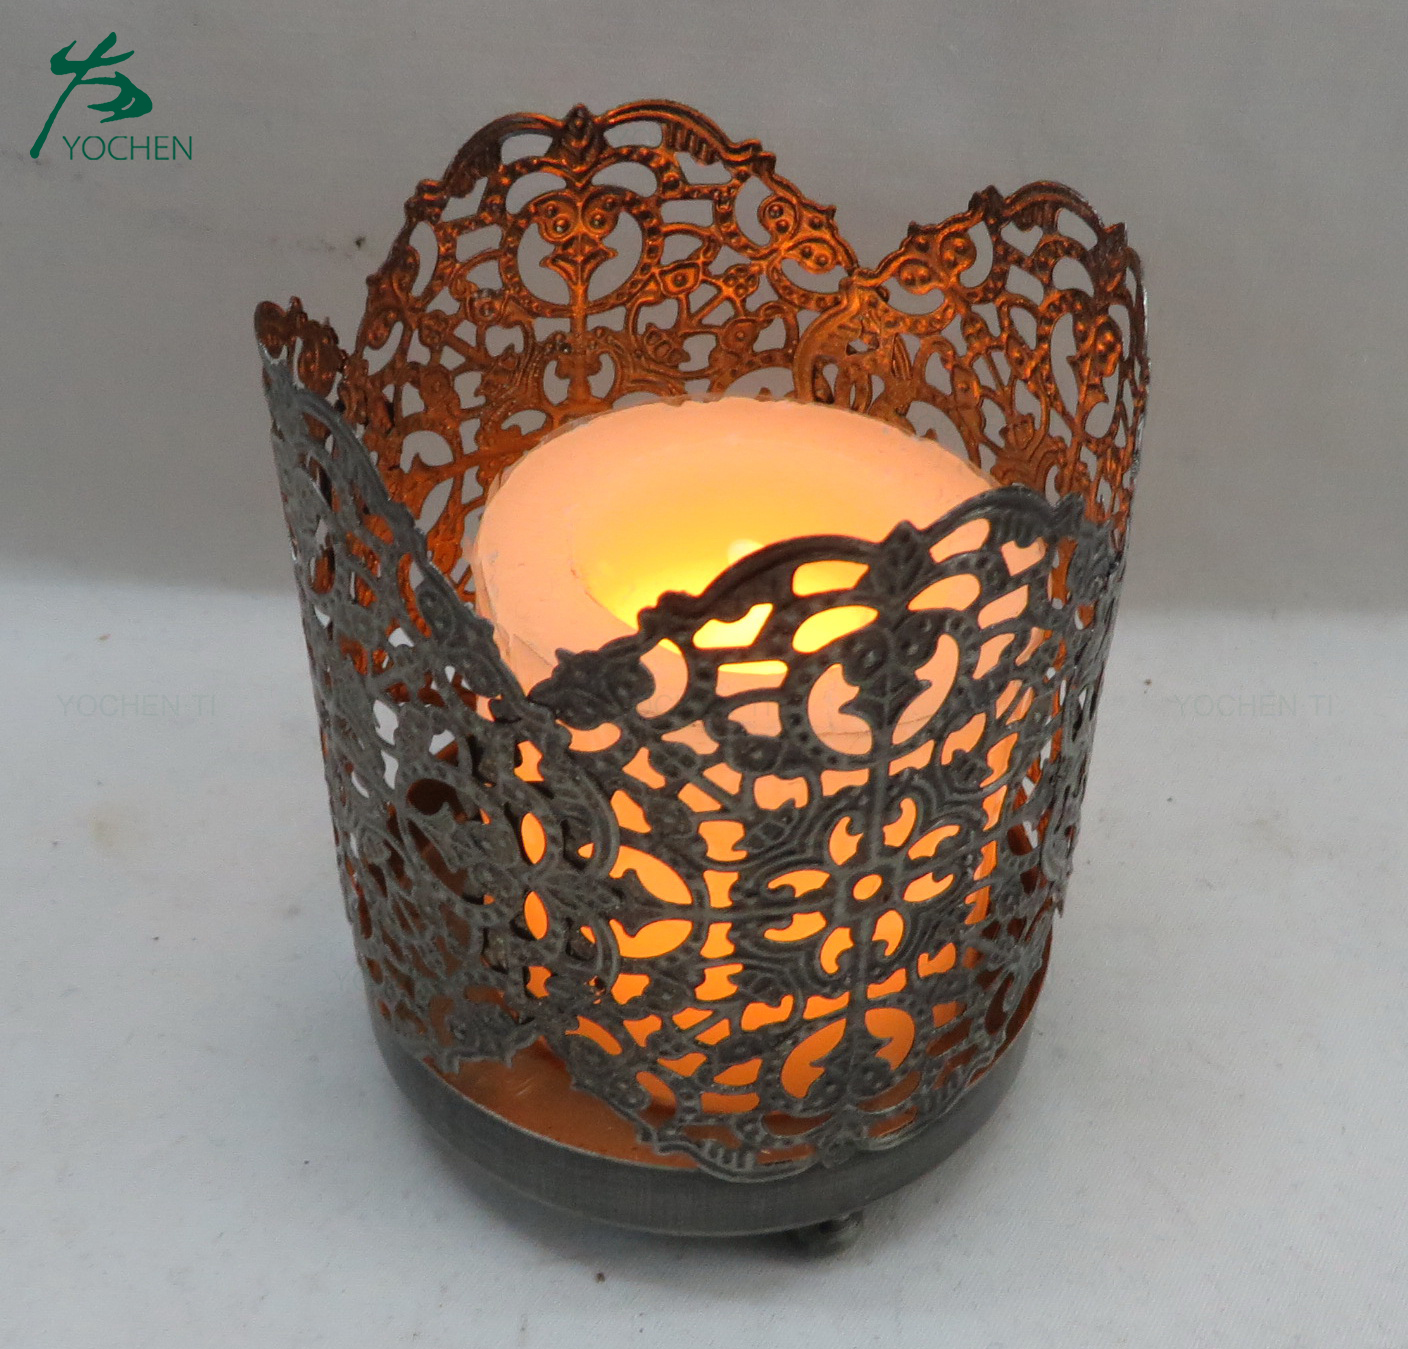 Italian Metal Lantern Votive Candle Holder For Home Decor